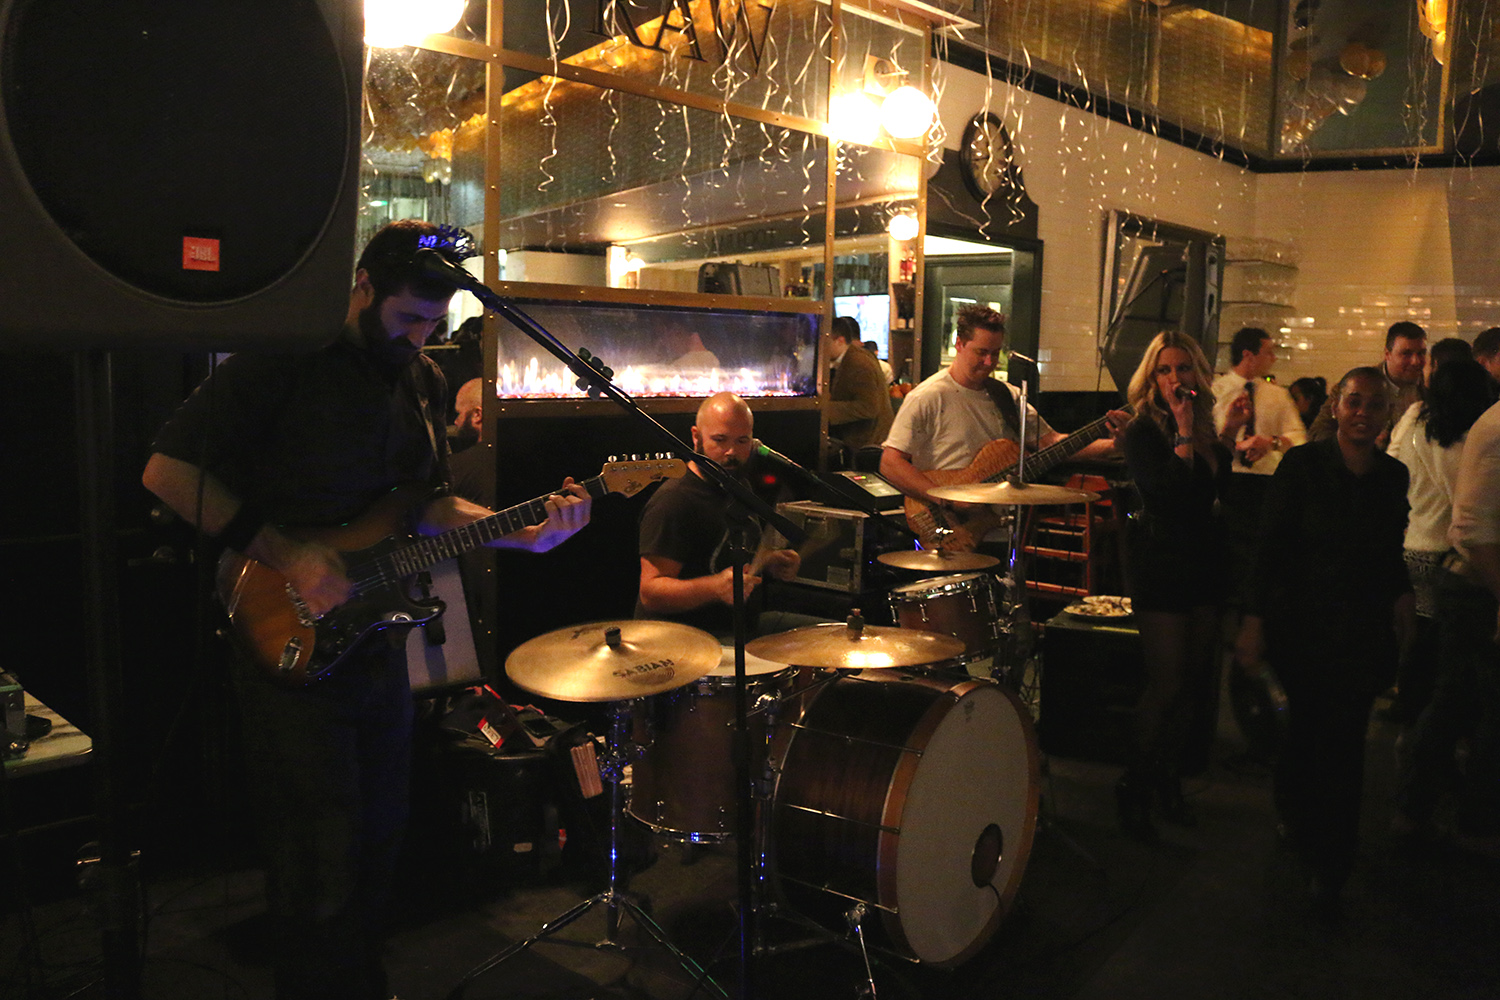 New Year's Eve at Loch Bar